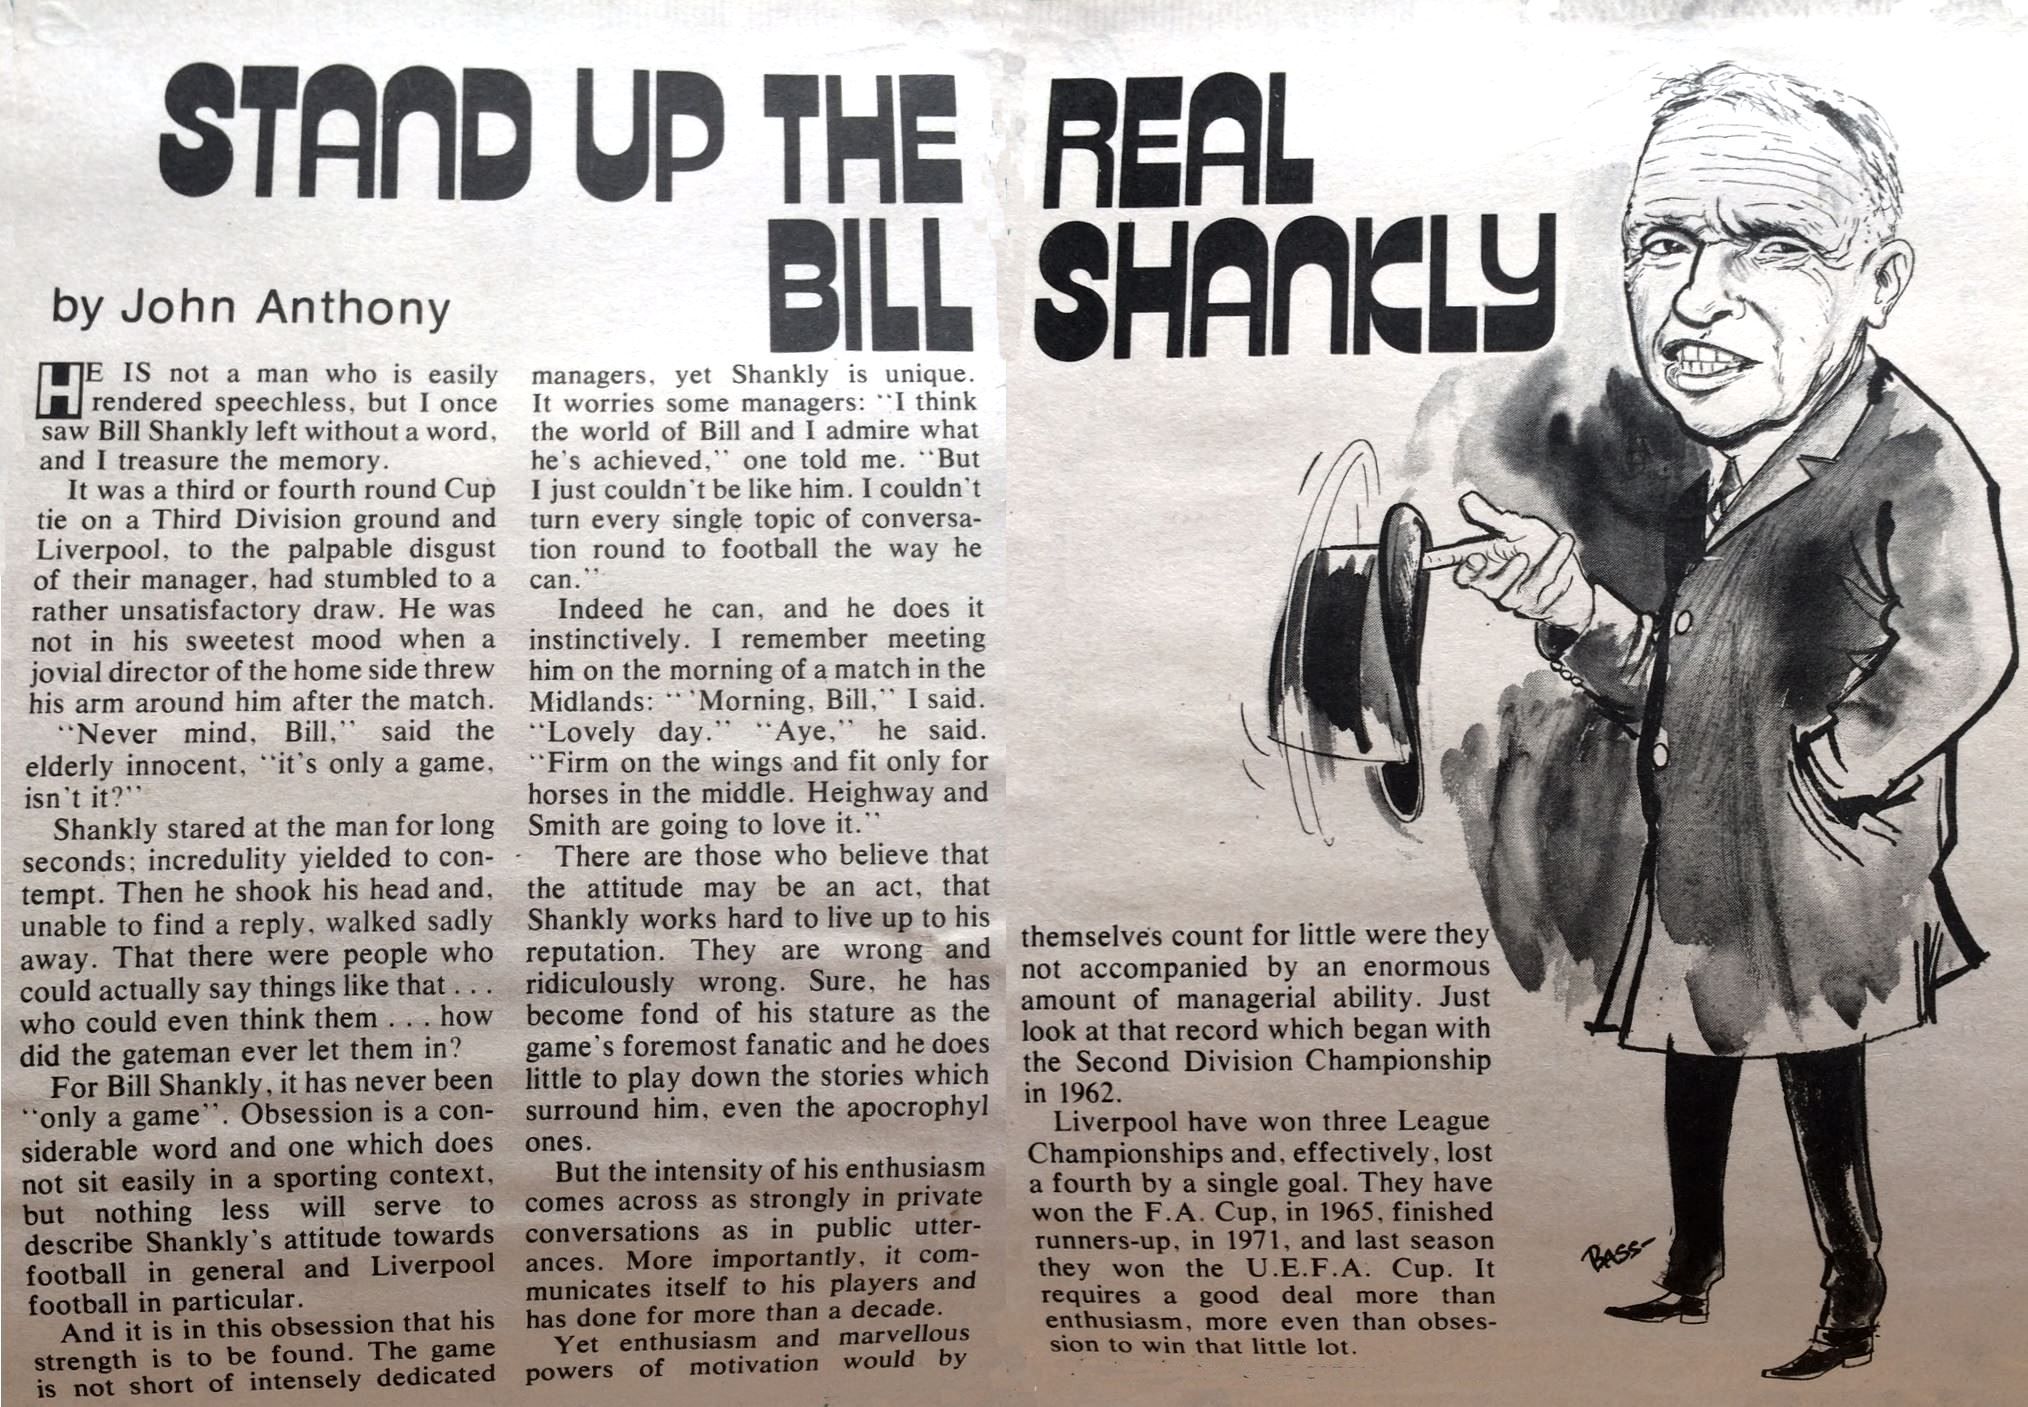 Stand up the real Bill Shankly